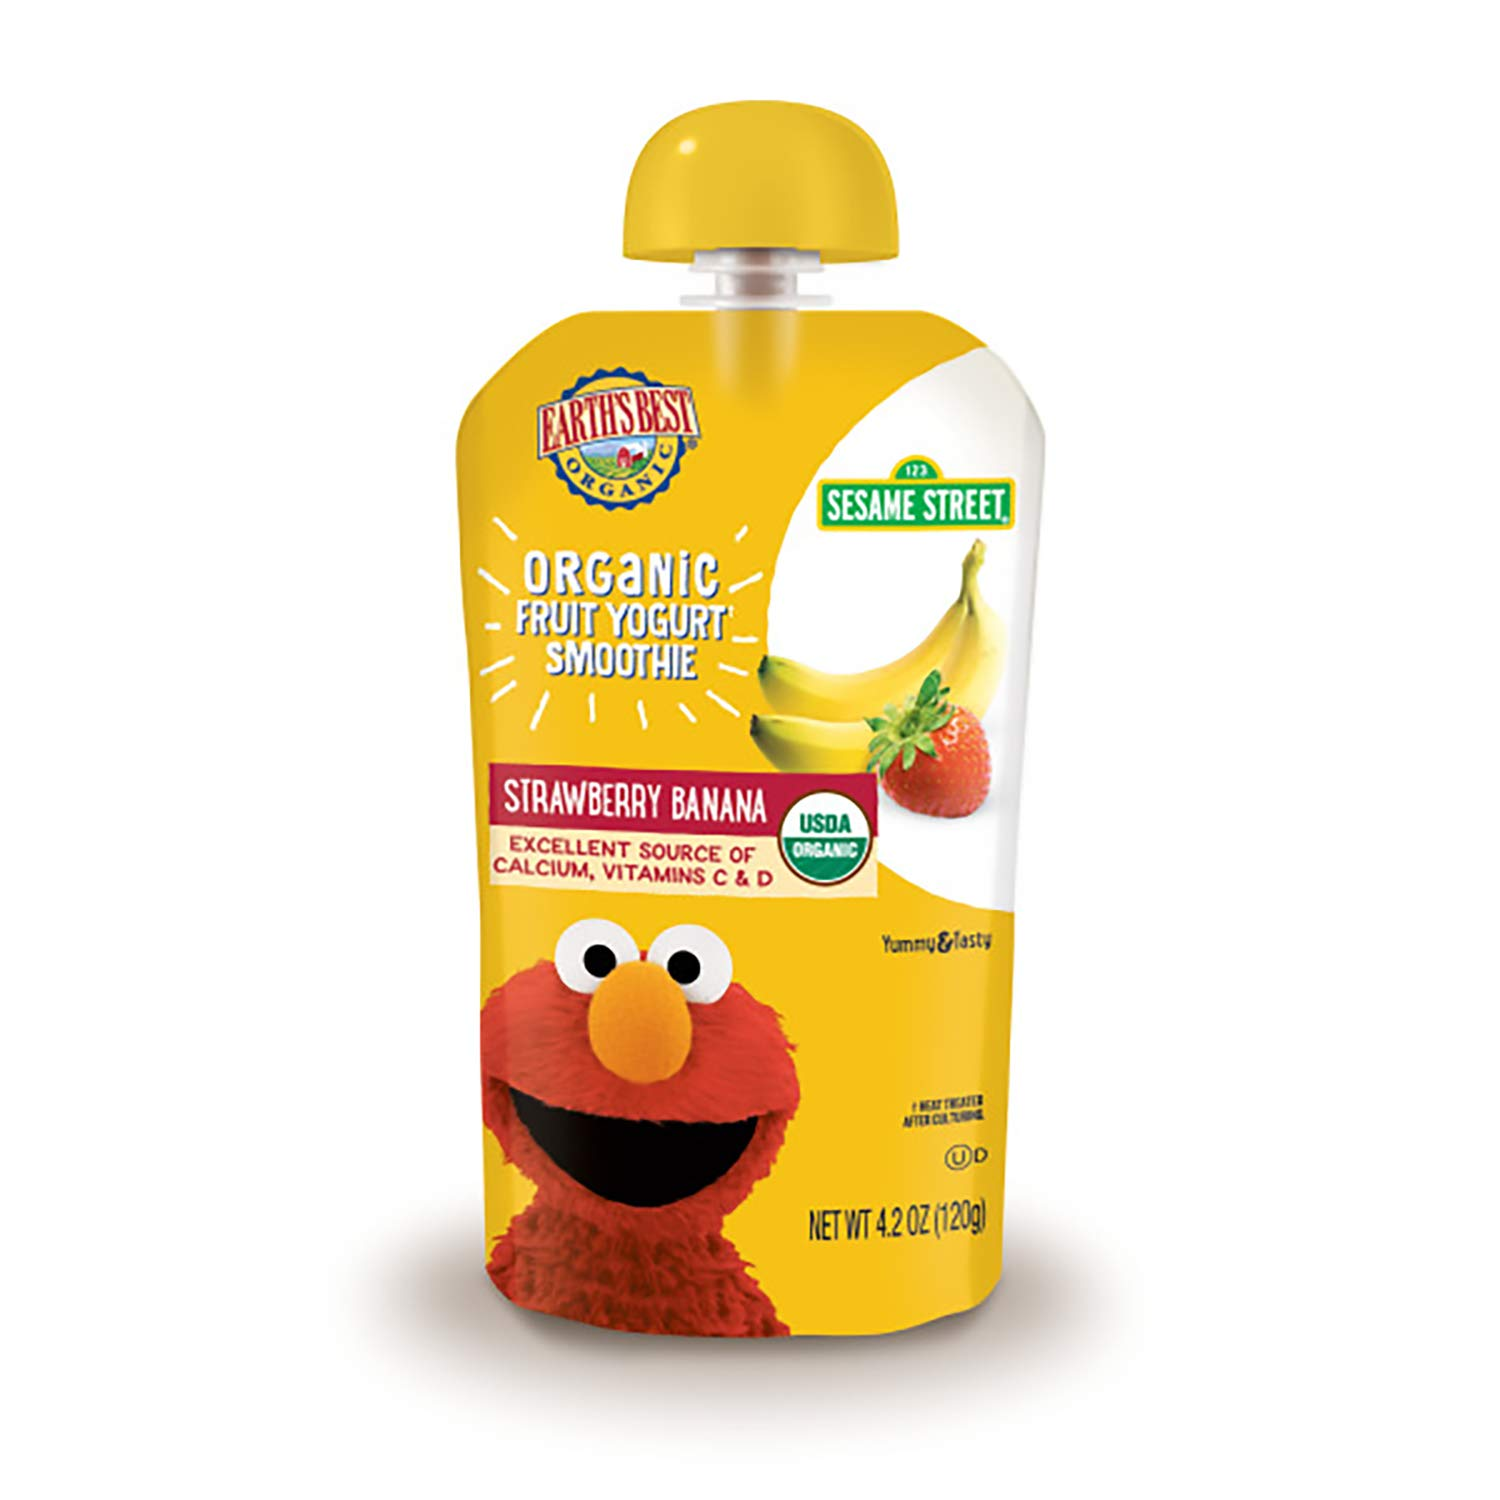 Earth's Best Organic Sesame Street Toddler Fruit Yogurt Smoothie, Strawberry Banana, 4.2 oz. Pouch, 4 Count (Pack of 4)